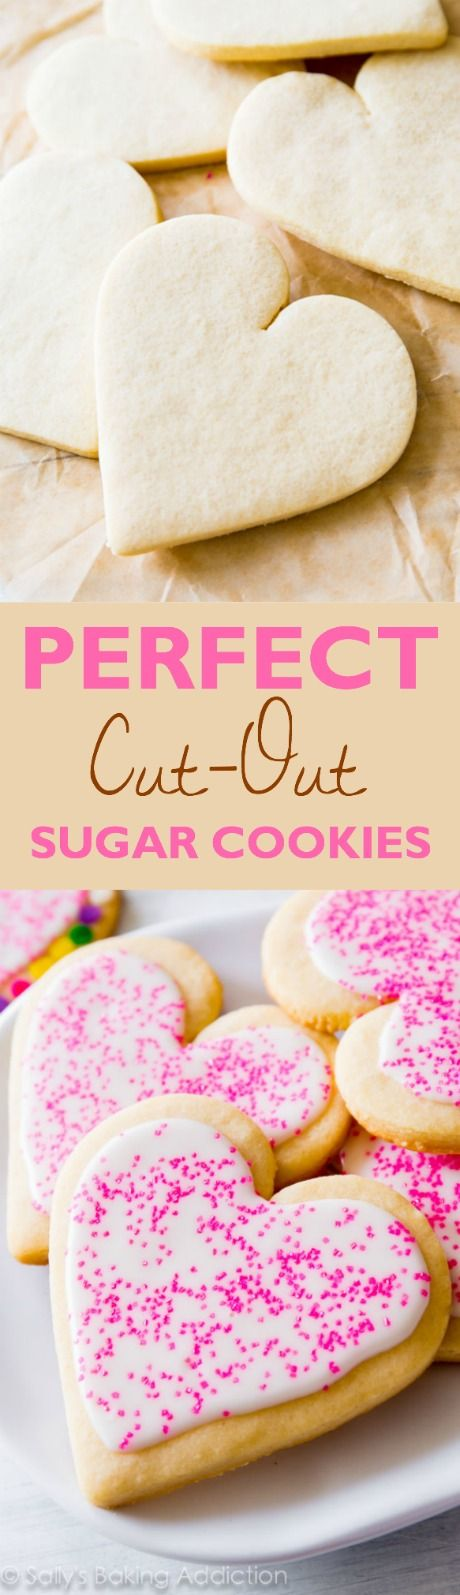 Recipe for molded sugar cookies